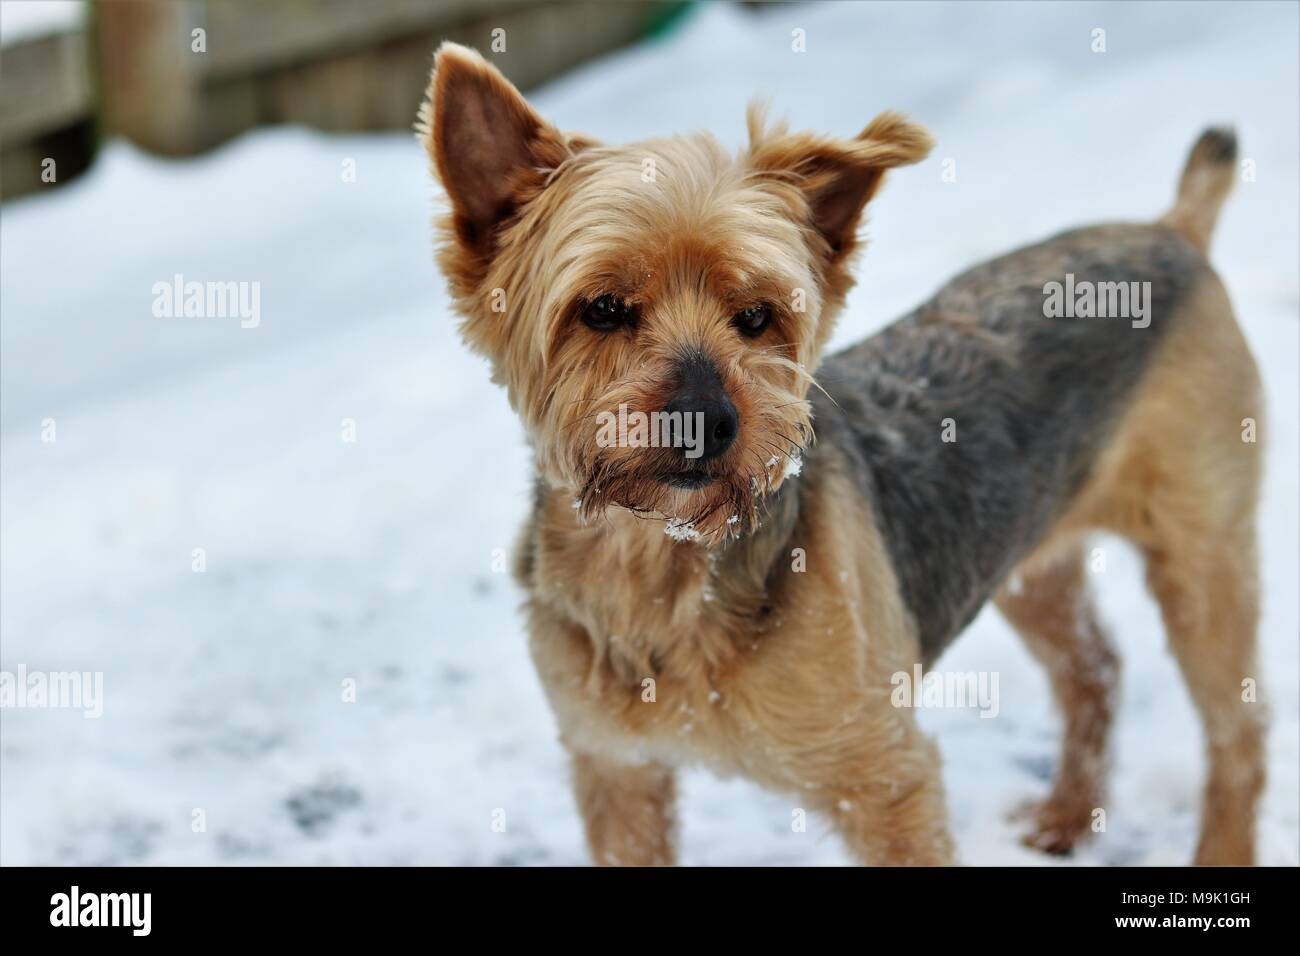 Yorkie Terrier In Snow Stock Photo 178053921 Alamy